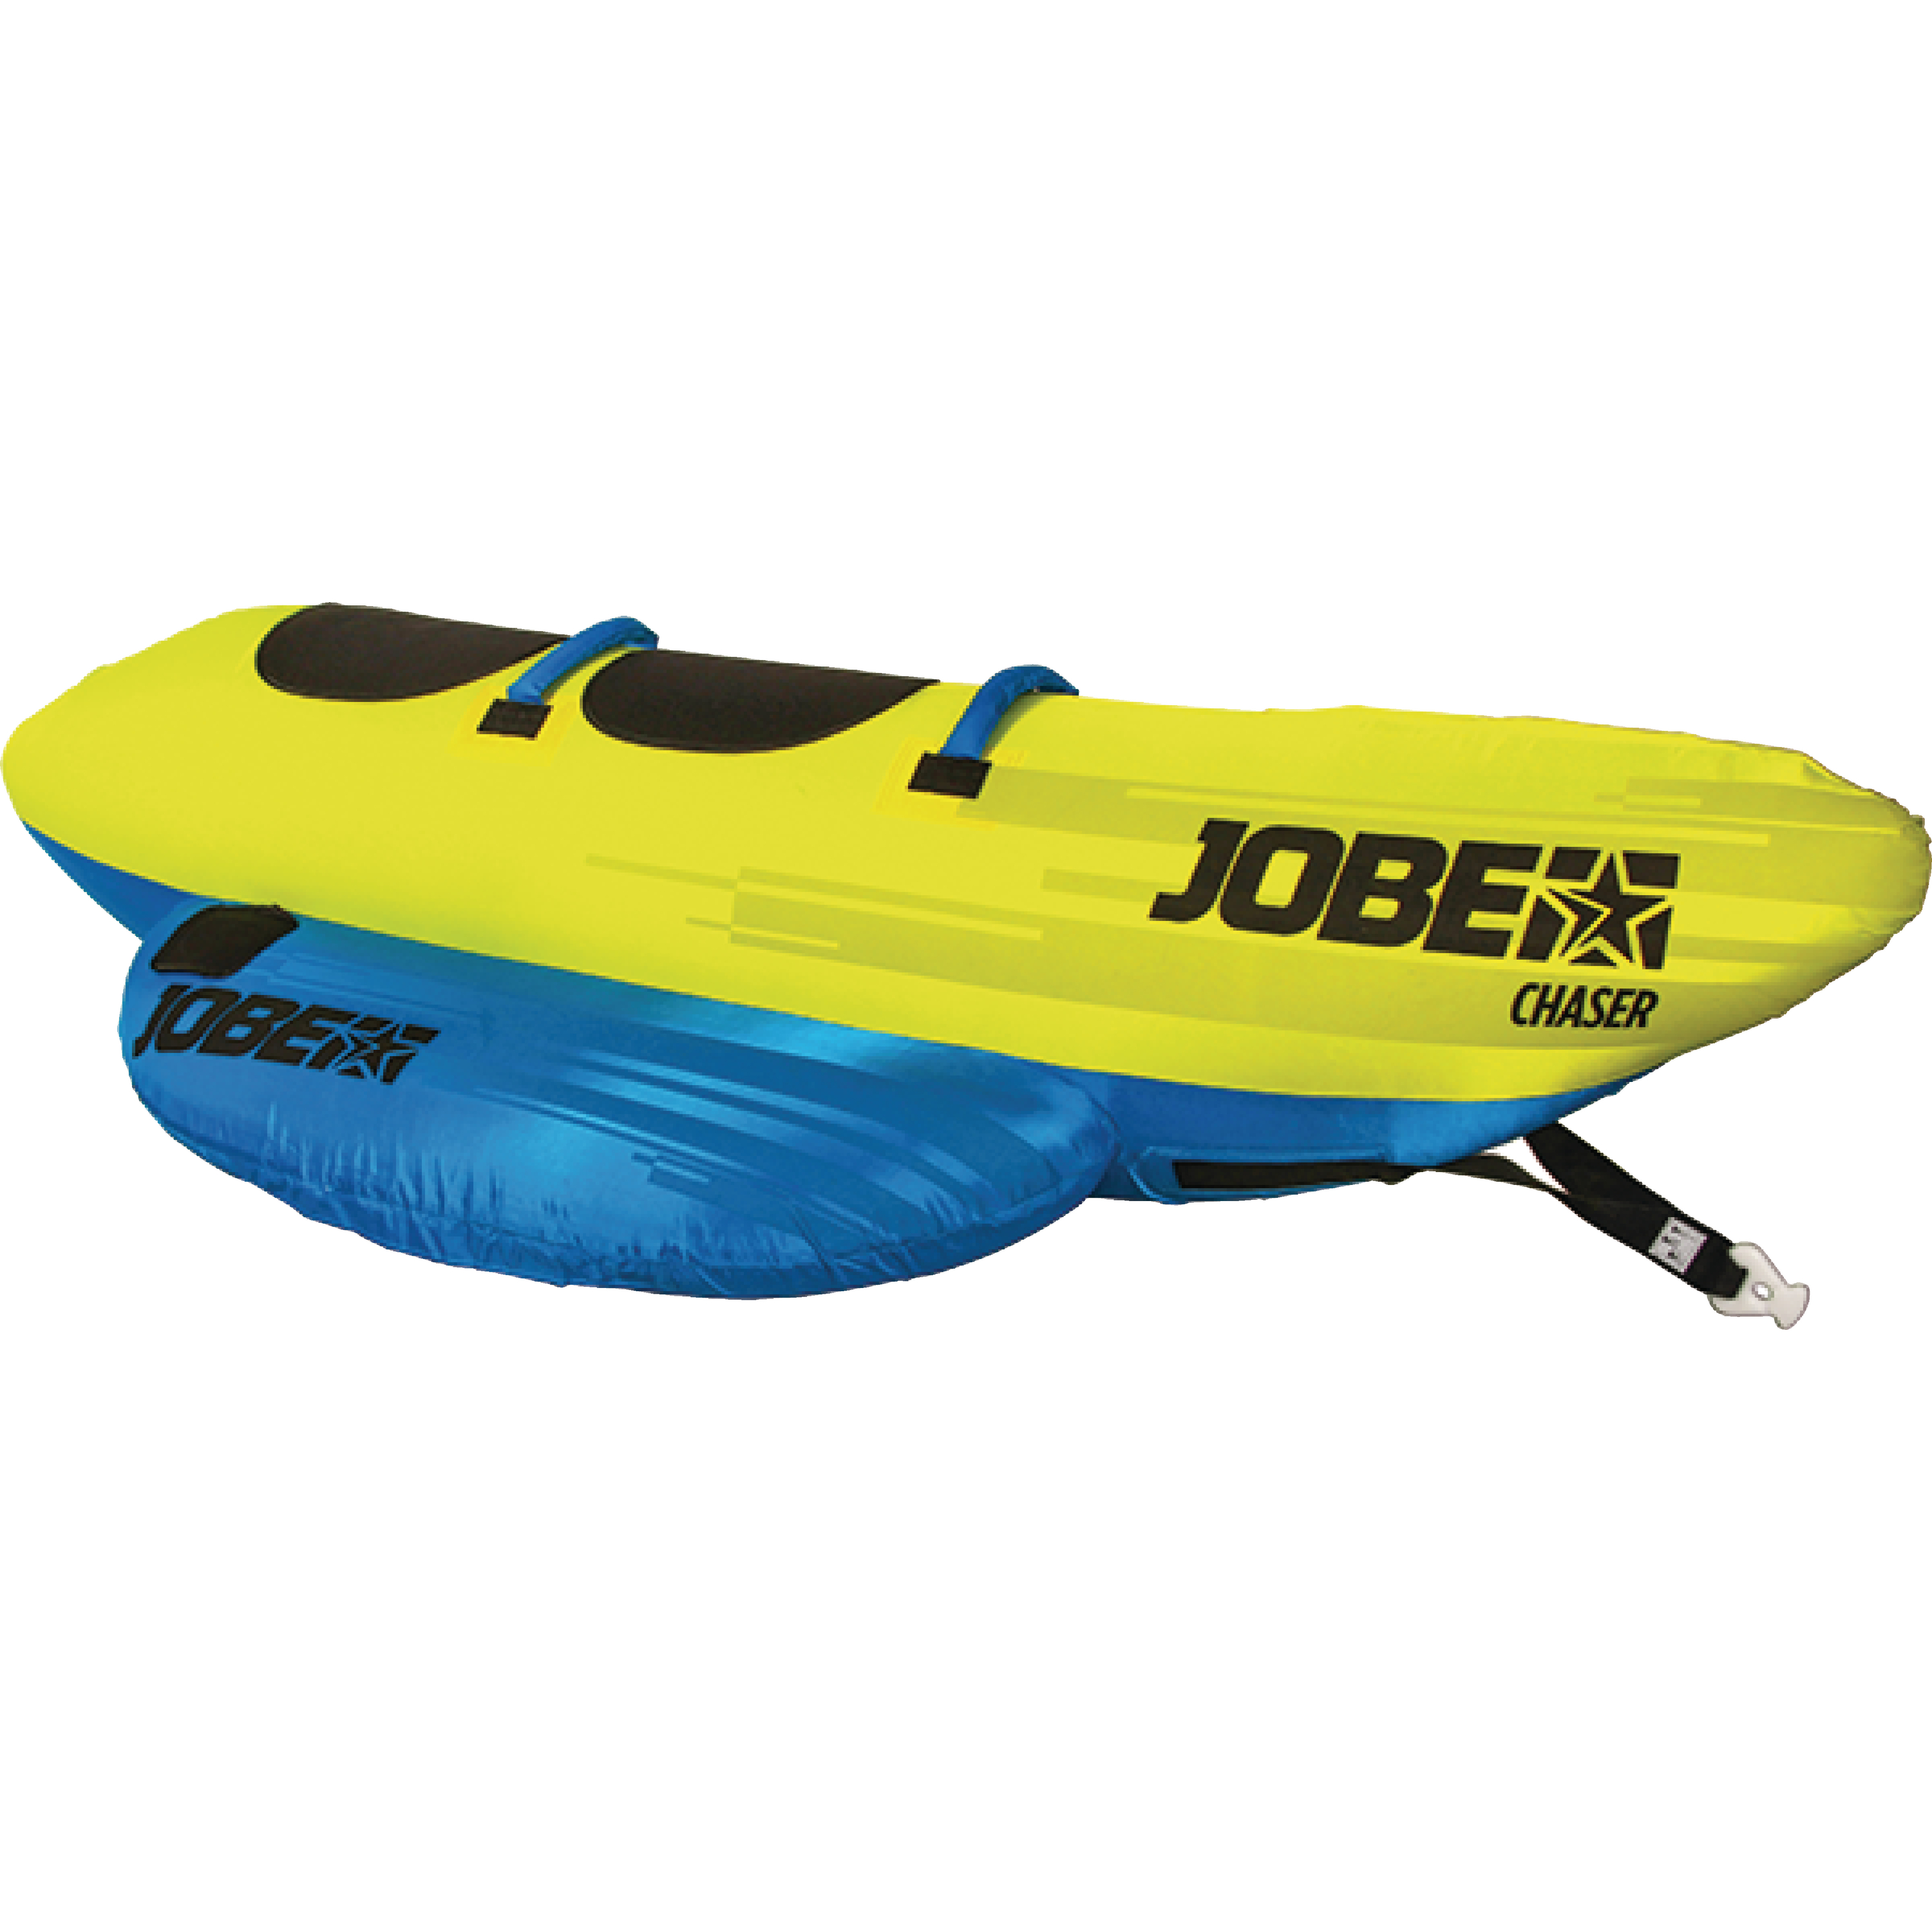 Jobe Chaser Yellow & Blue Inflatable Towable